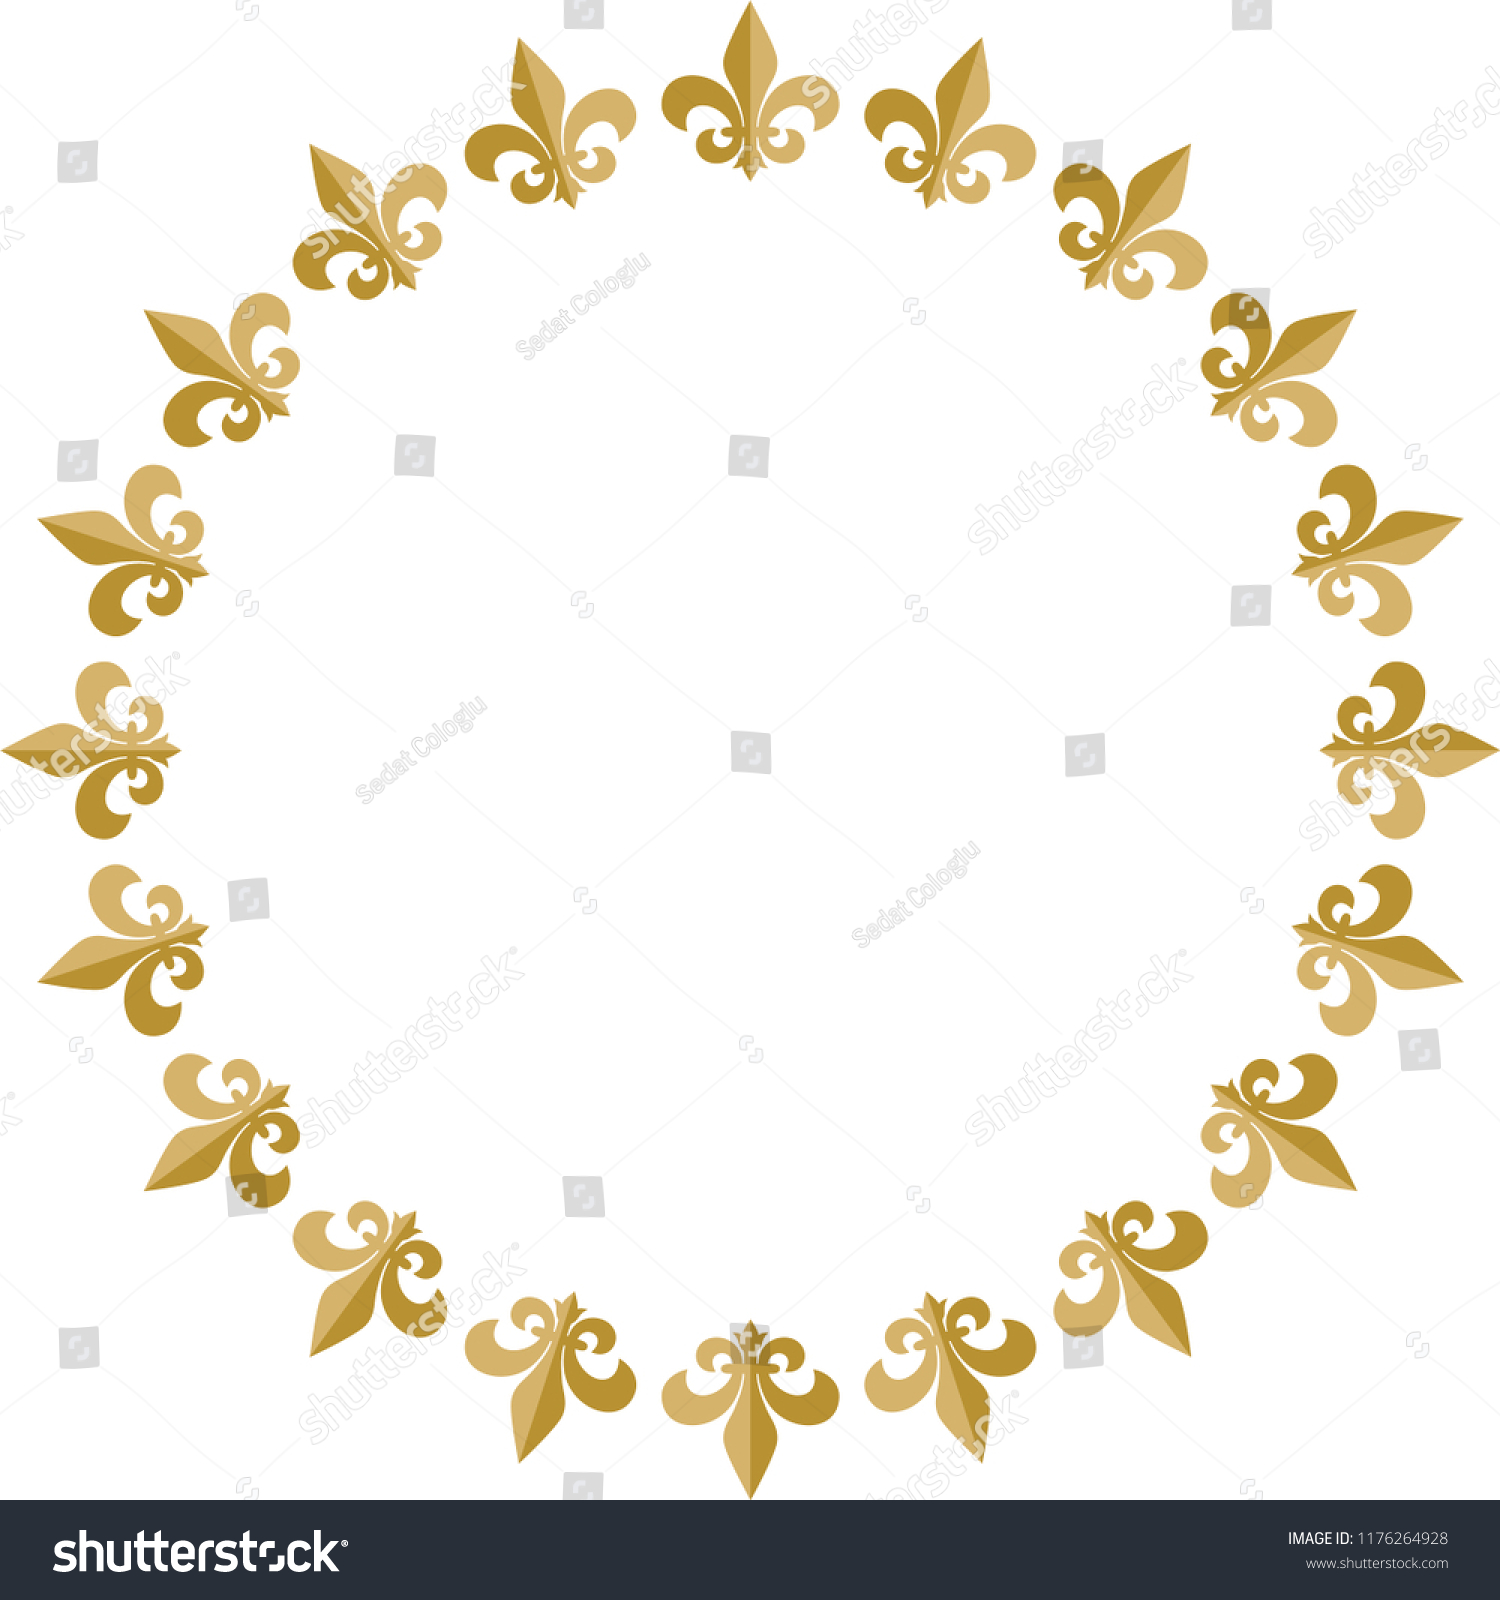 Fleur De Lis Vector Drawing Logo Stock Vector Royalty Free